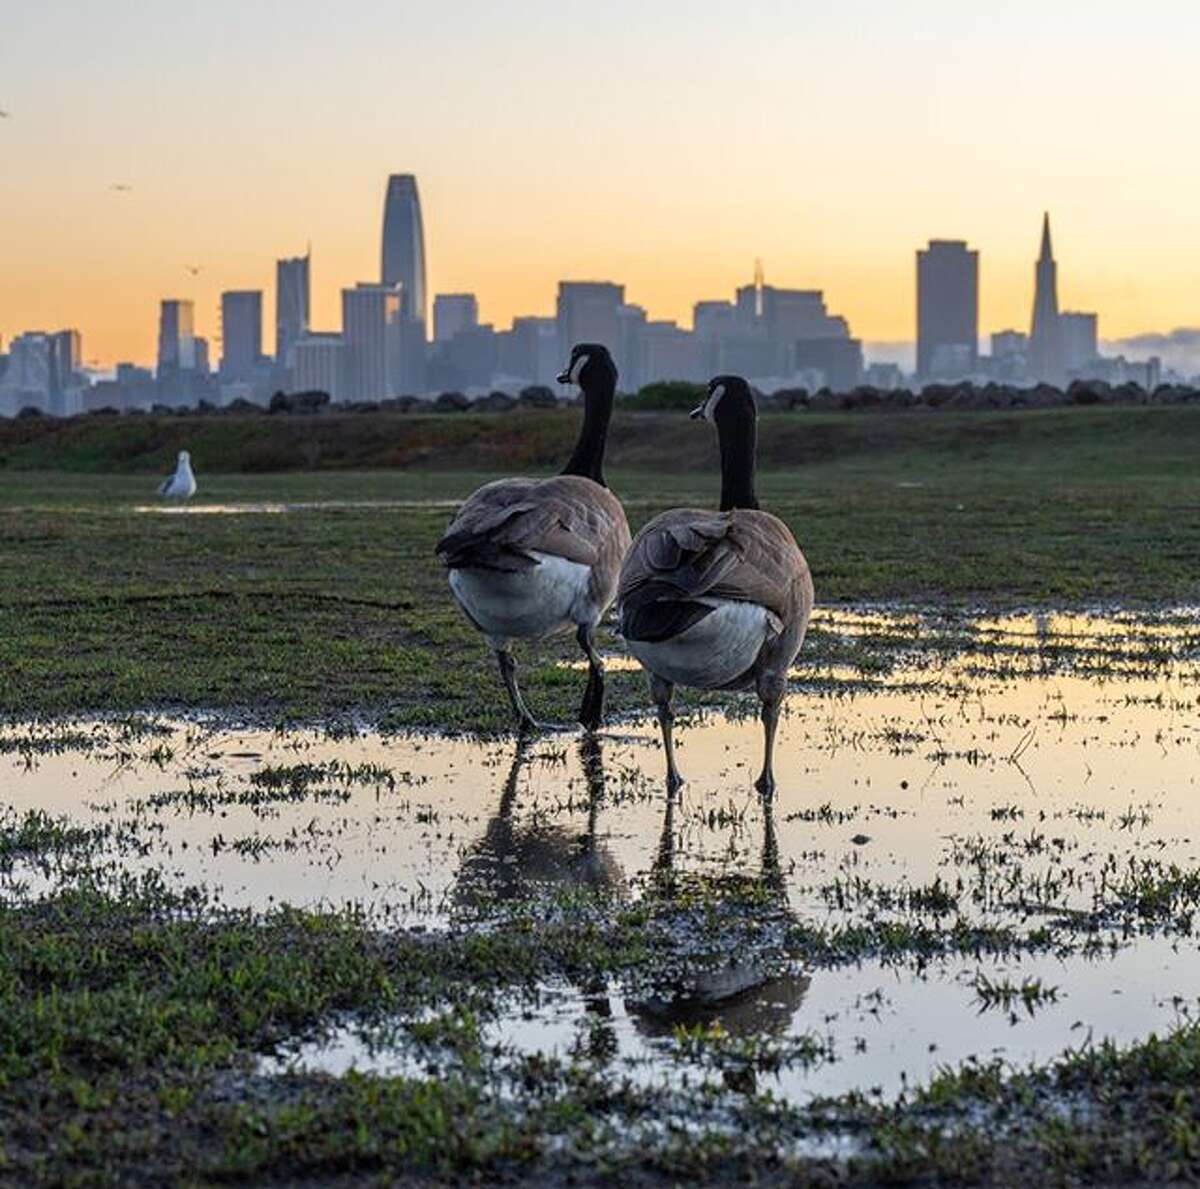 @conloncreatives found some geese strolling on Treasure Island after a recent rain.